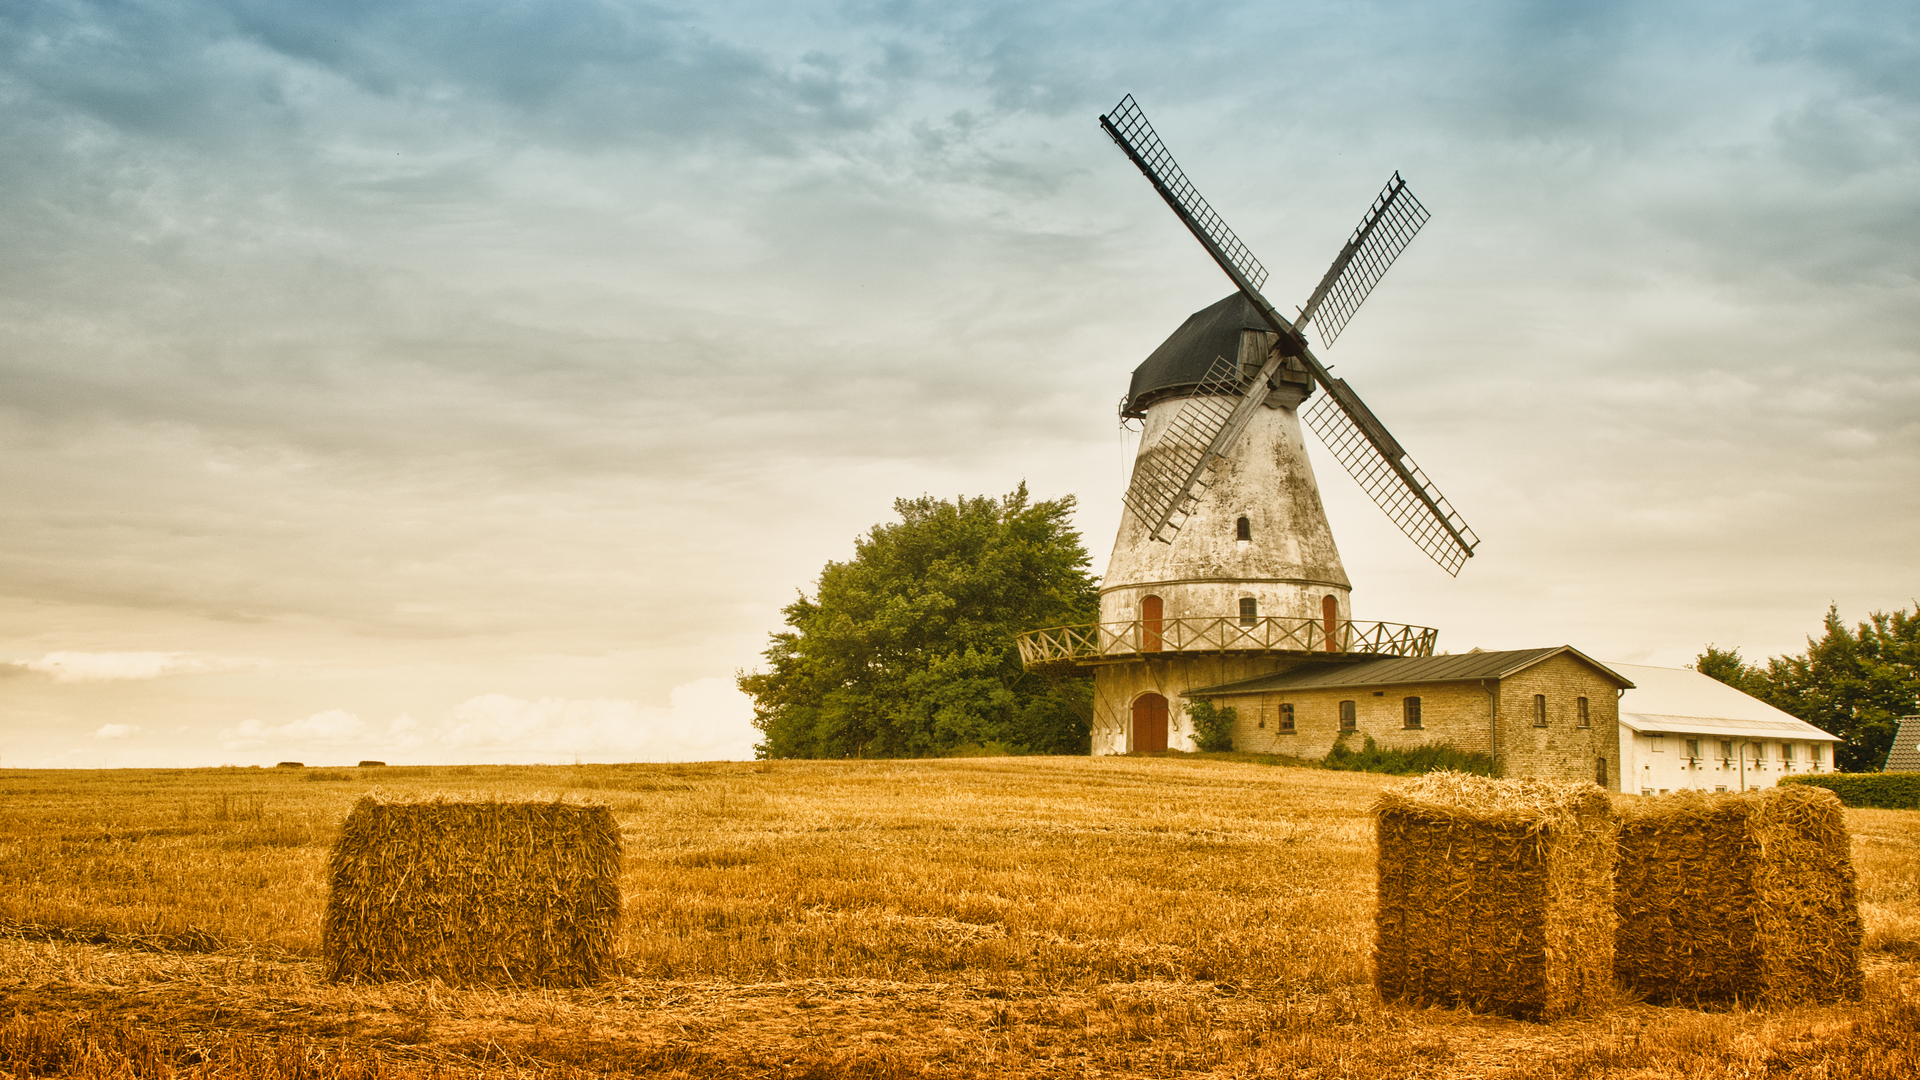 (1920x1080 px) - Windmill Pictures Wallpapers, Jonna Pickard